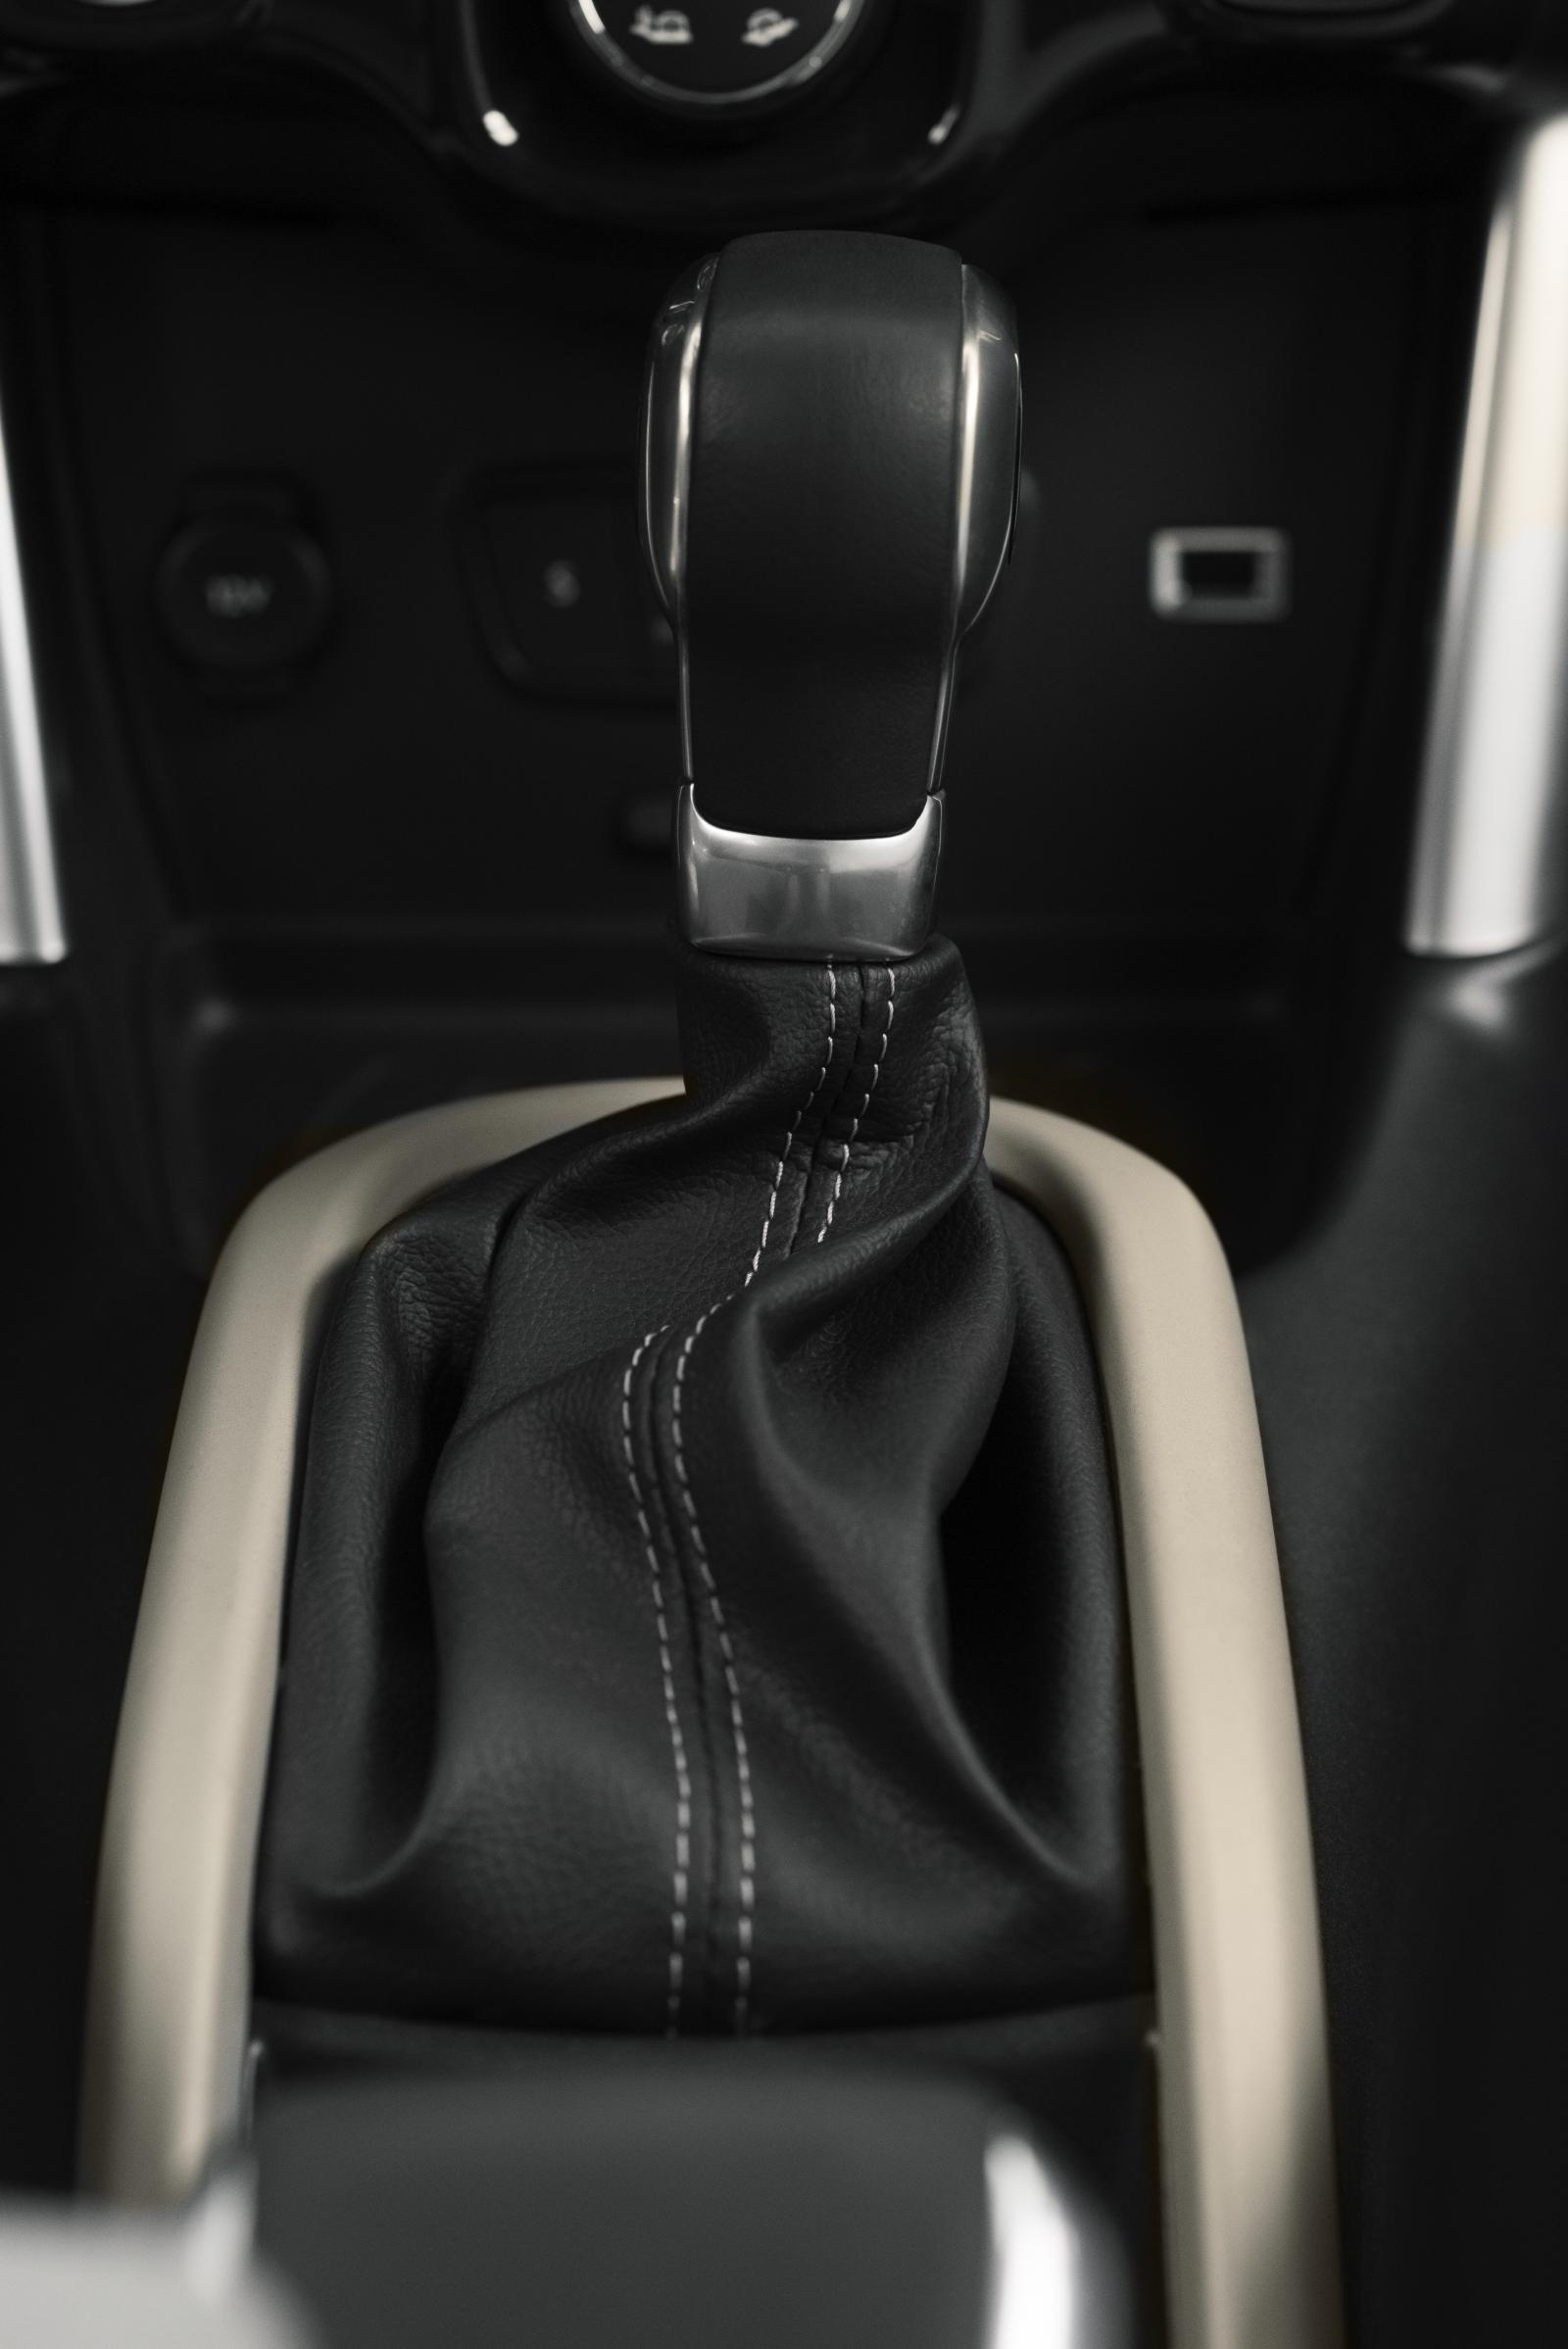 C3 Aircross Compact SUV - Gear stick